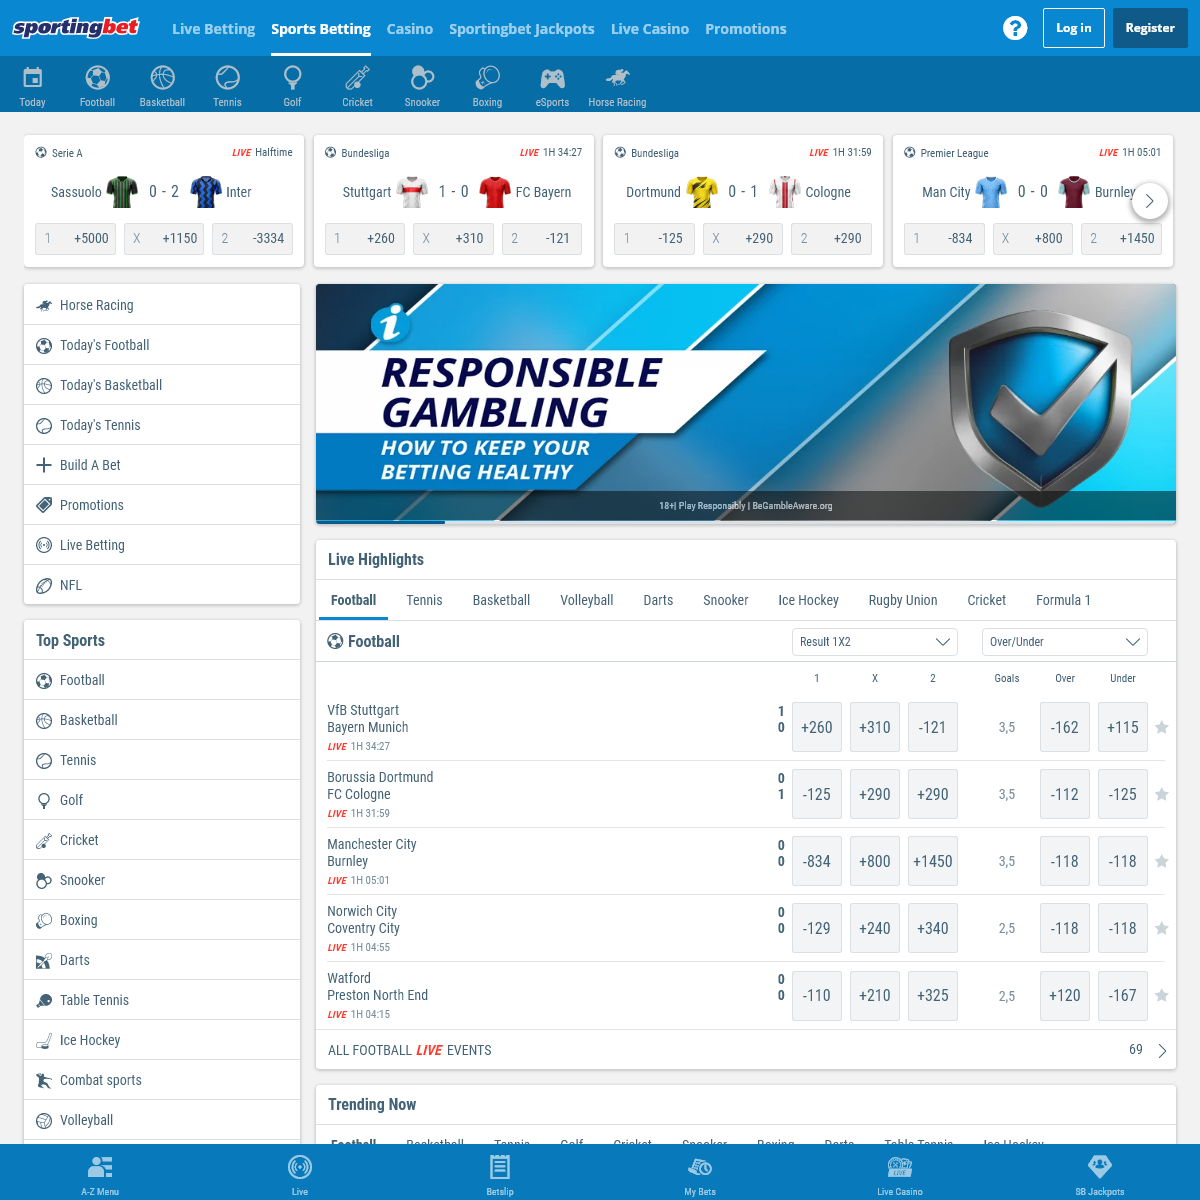 Sports Betting Odds - Bet on a Wide Range of Sports at Sportingbet - Sportingbet